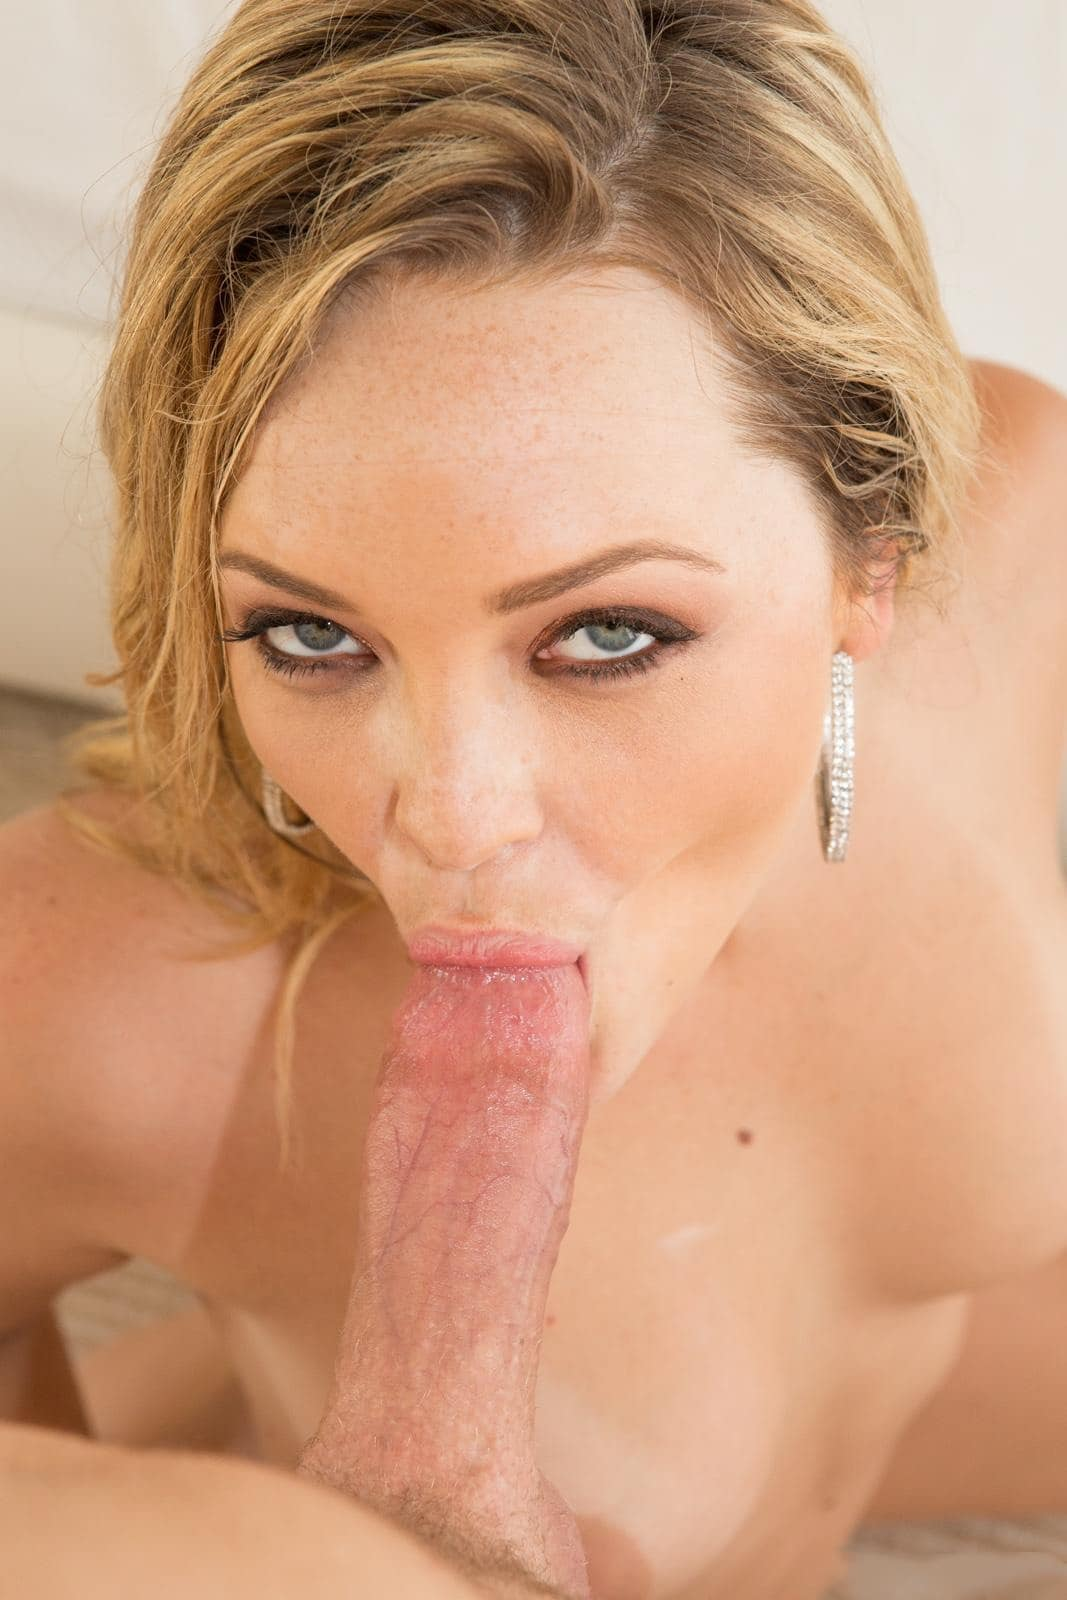 alexis texas videos videos gratis travestis